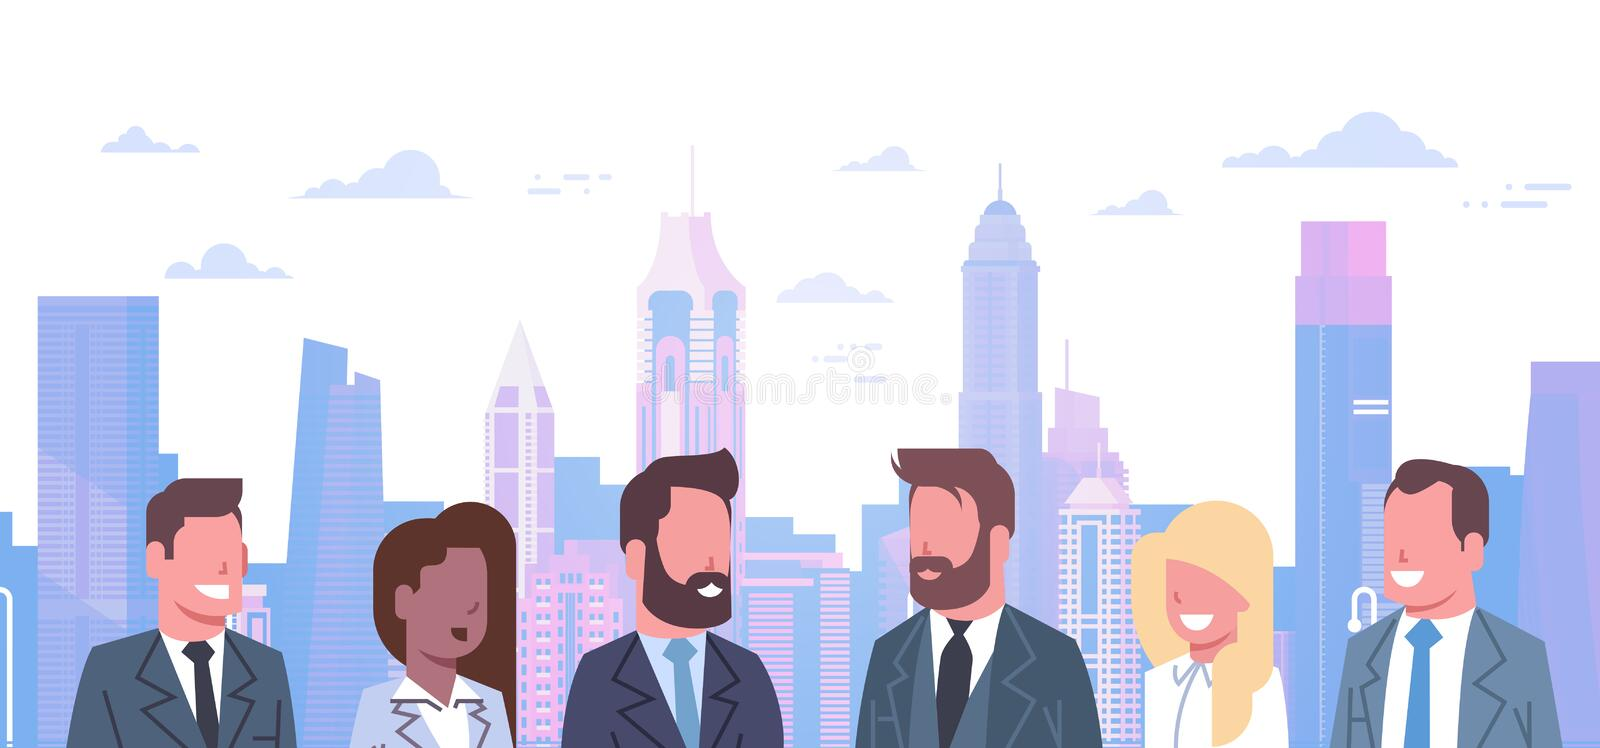 Group Of Business People Over Modern City Background Concept Team Of Successful Businessmen And Businesswomen royalty free illustration